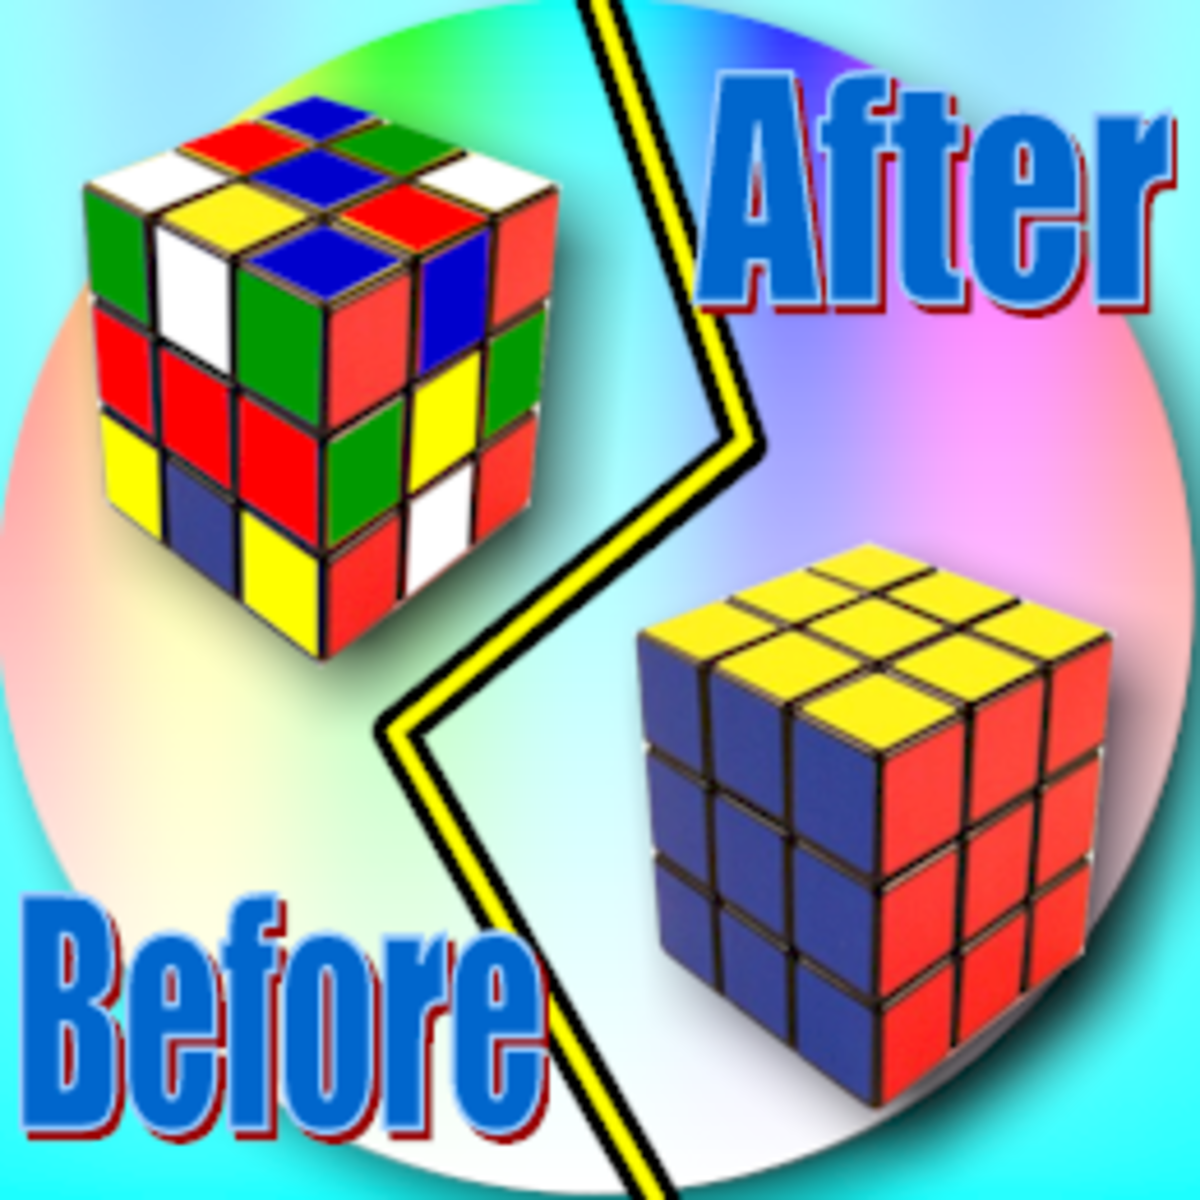 How To Solve A Rubiks Cube - Introduction